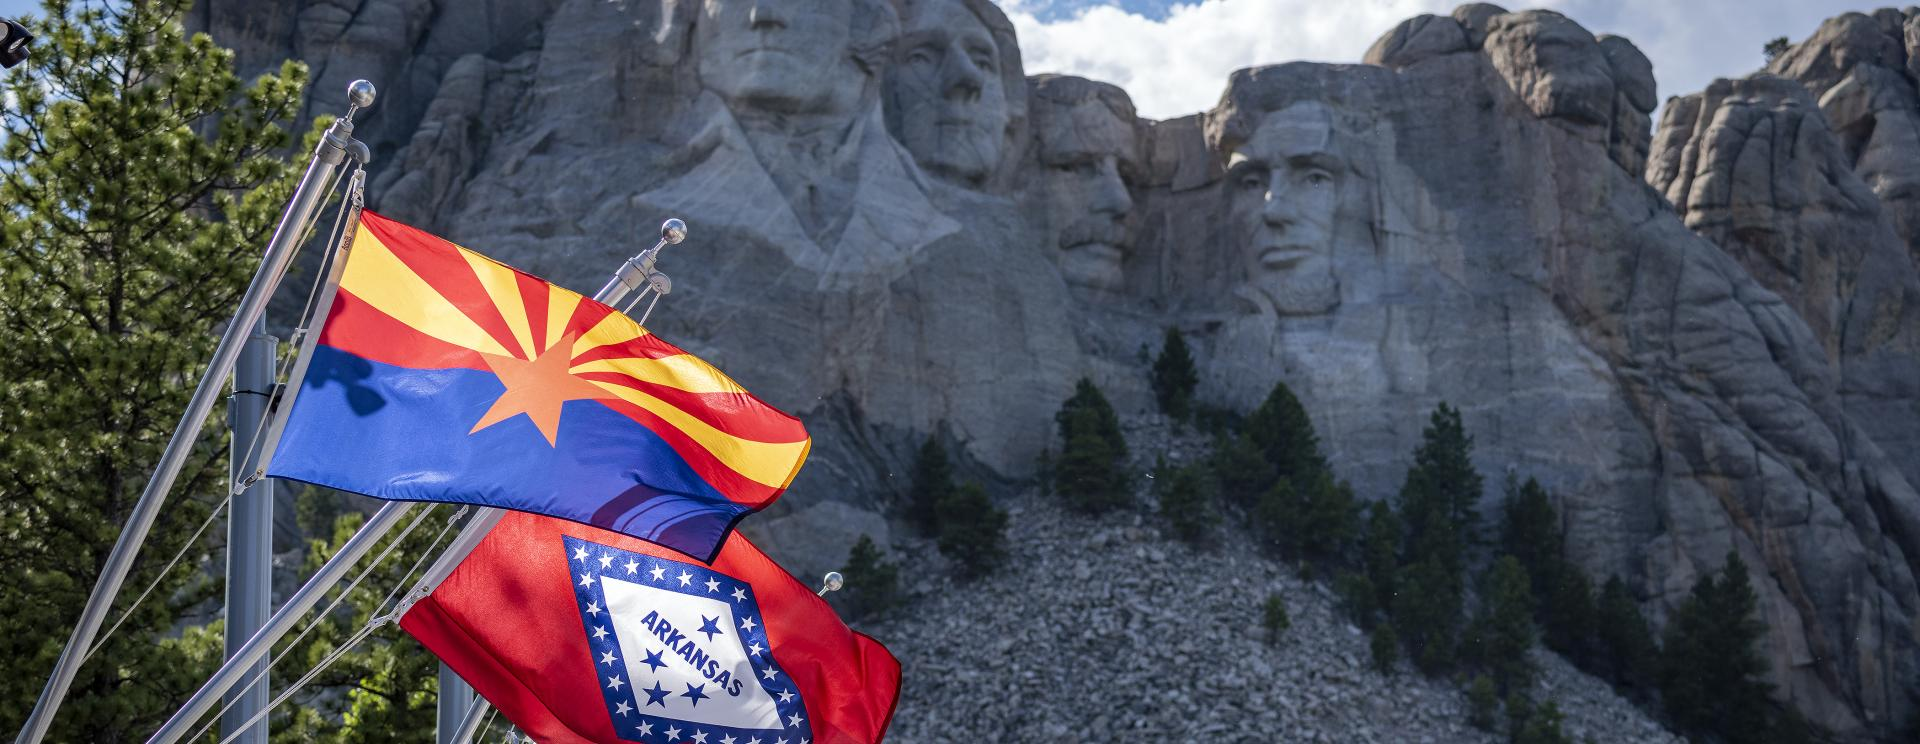 Mount Rushmore Independence Day Celebrations